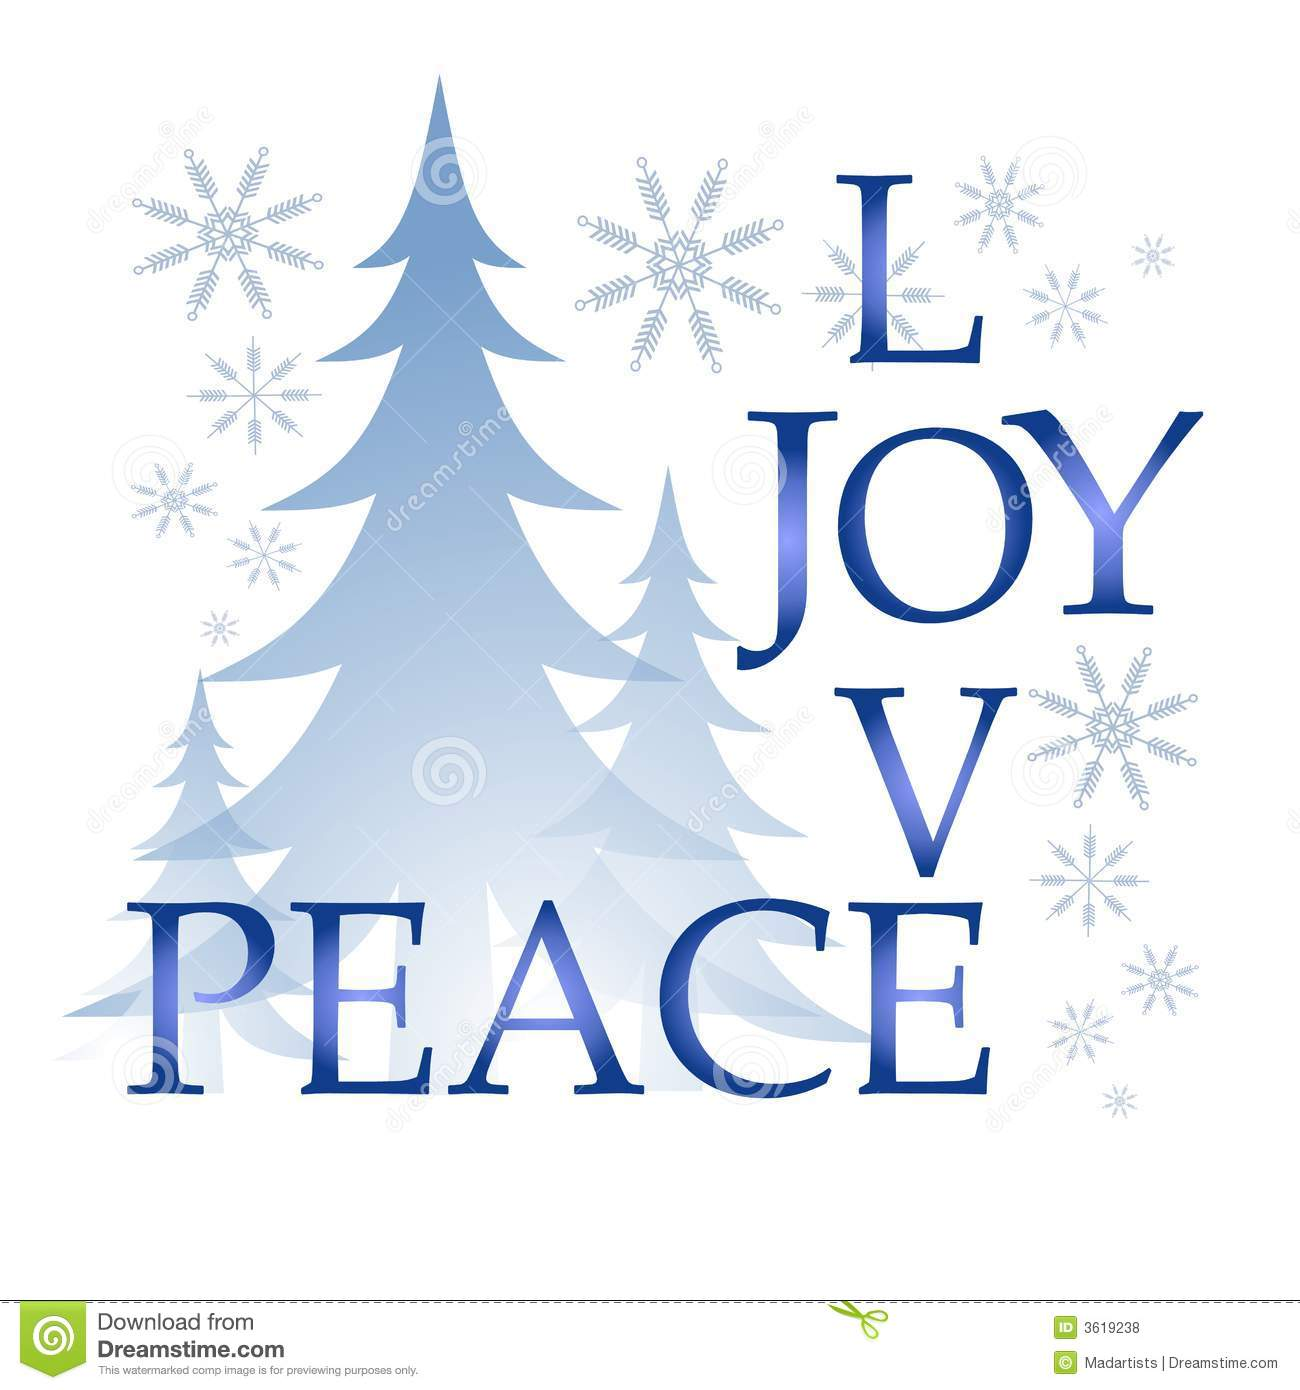 hight resolution of a clip art illustration of the words love joy and peace integrated puzzle style surrounded by trees and snowflakes